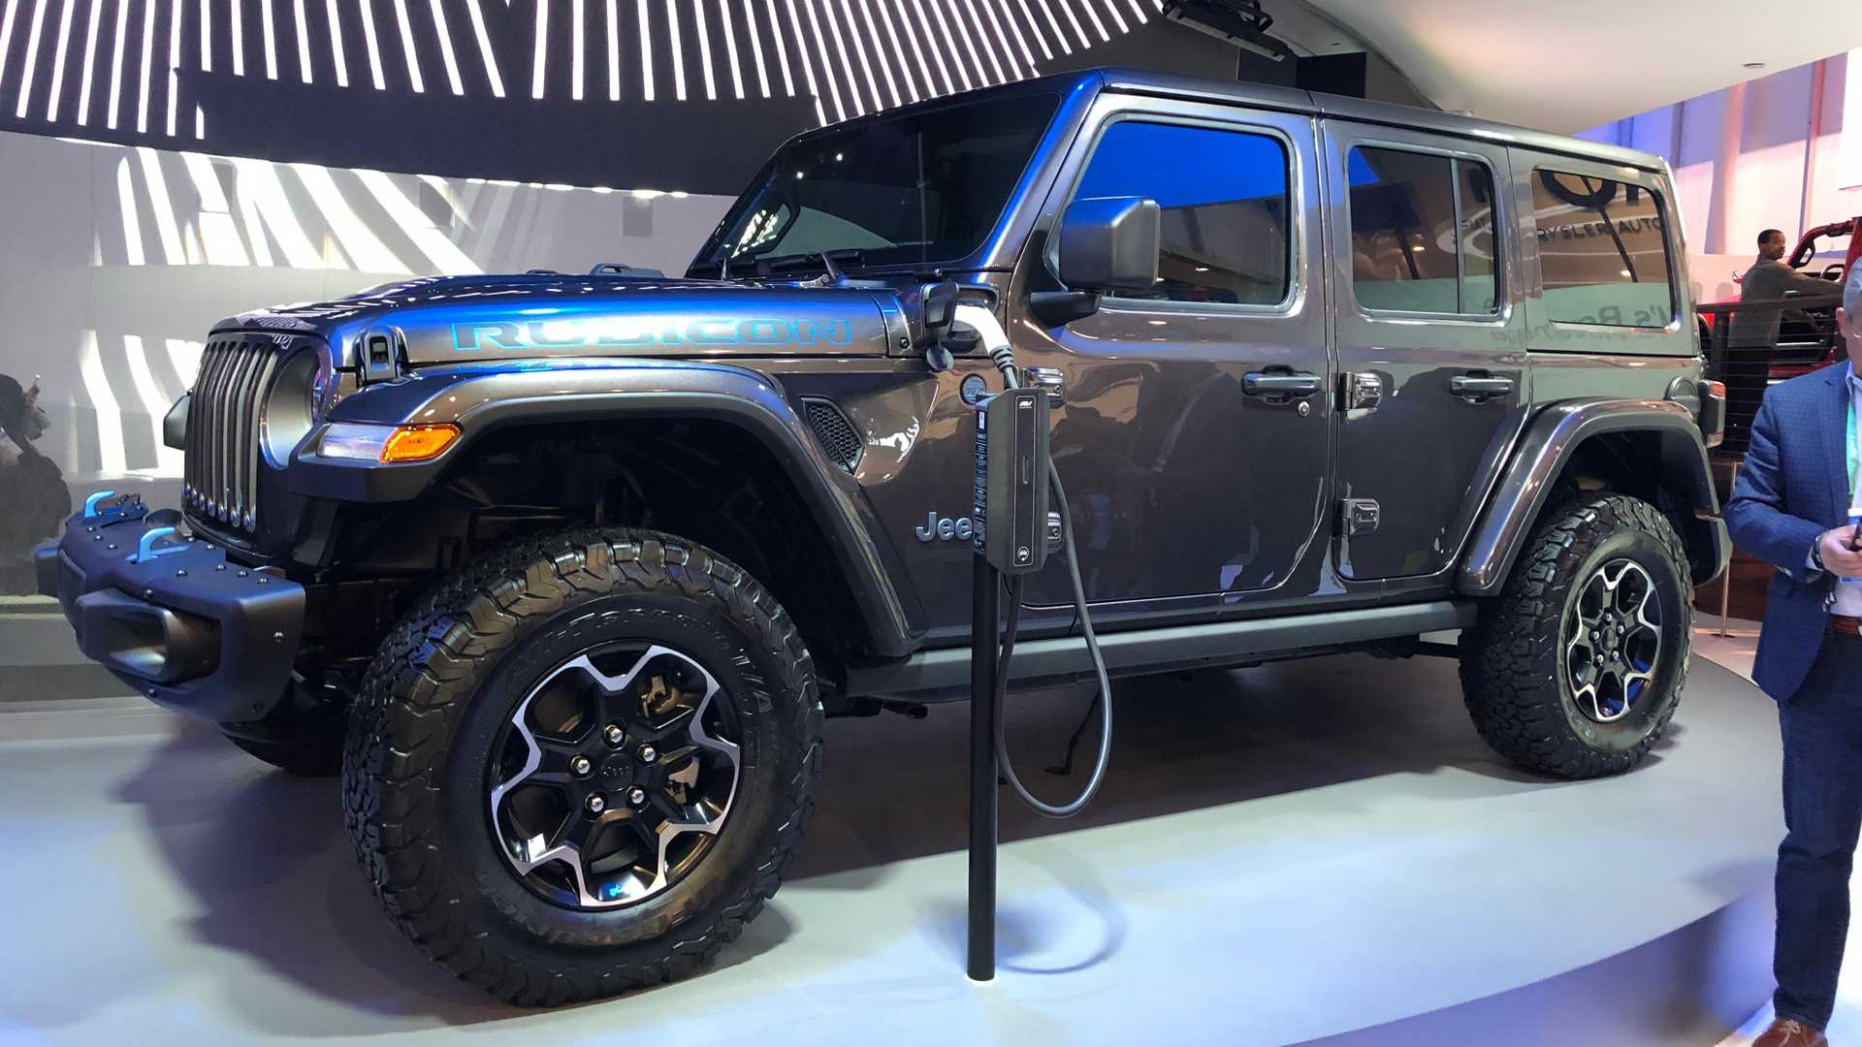 Pricing Jeep Wrangler 2022 Hybrid